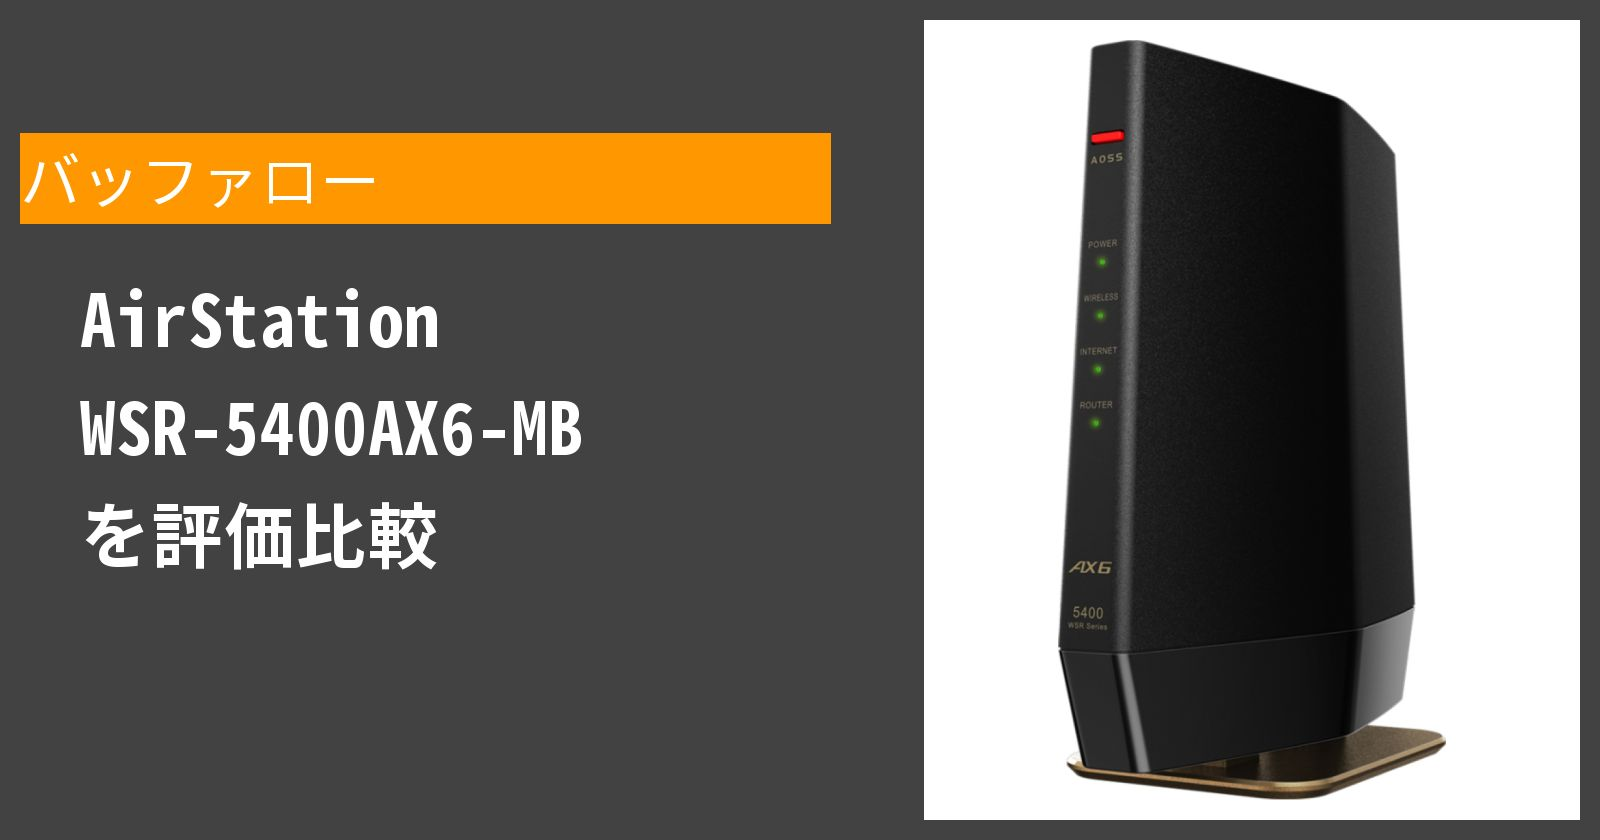 AirStation WSR-5400AX6-MBを徹底評価